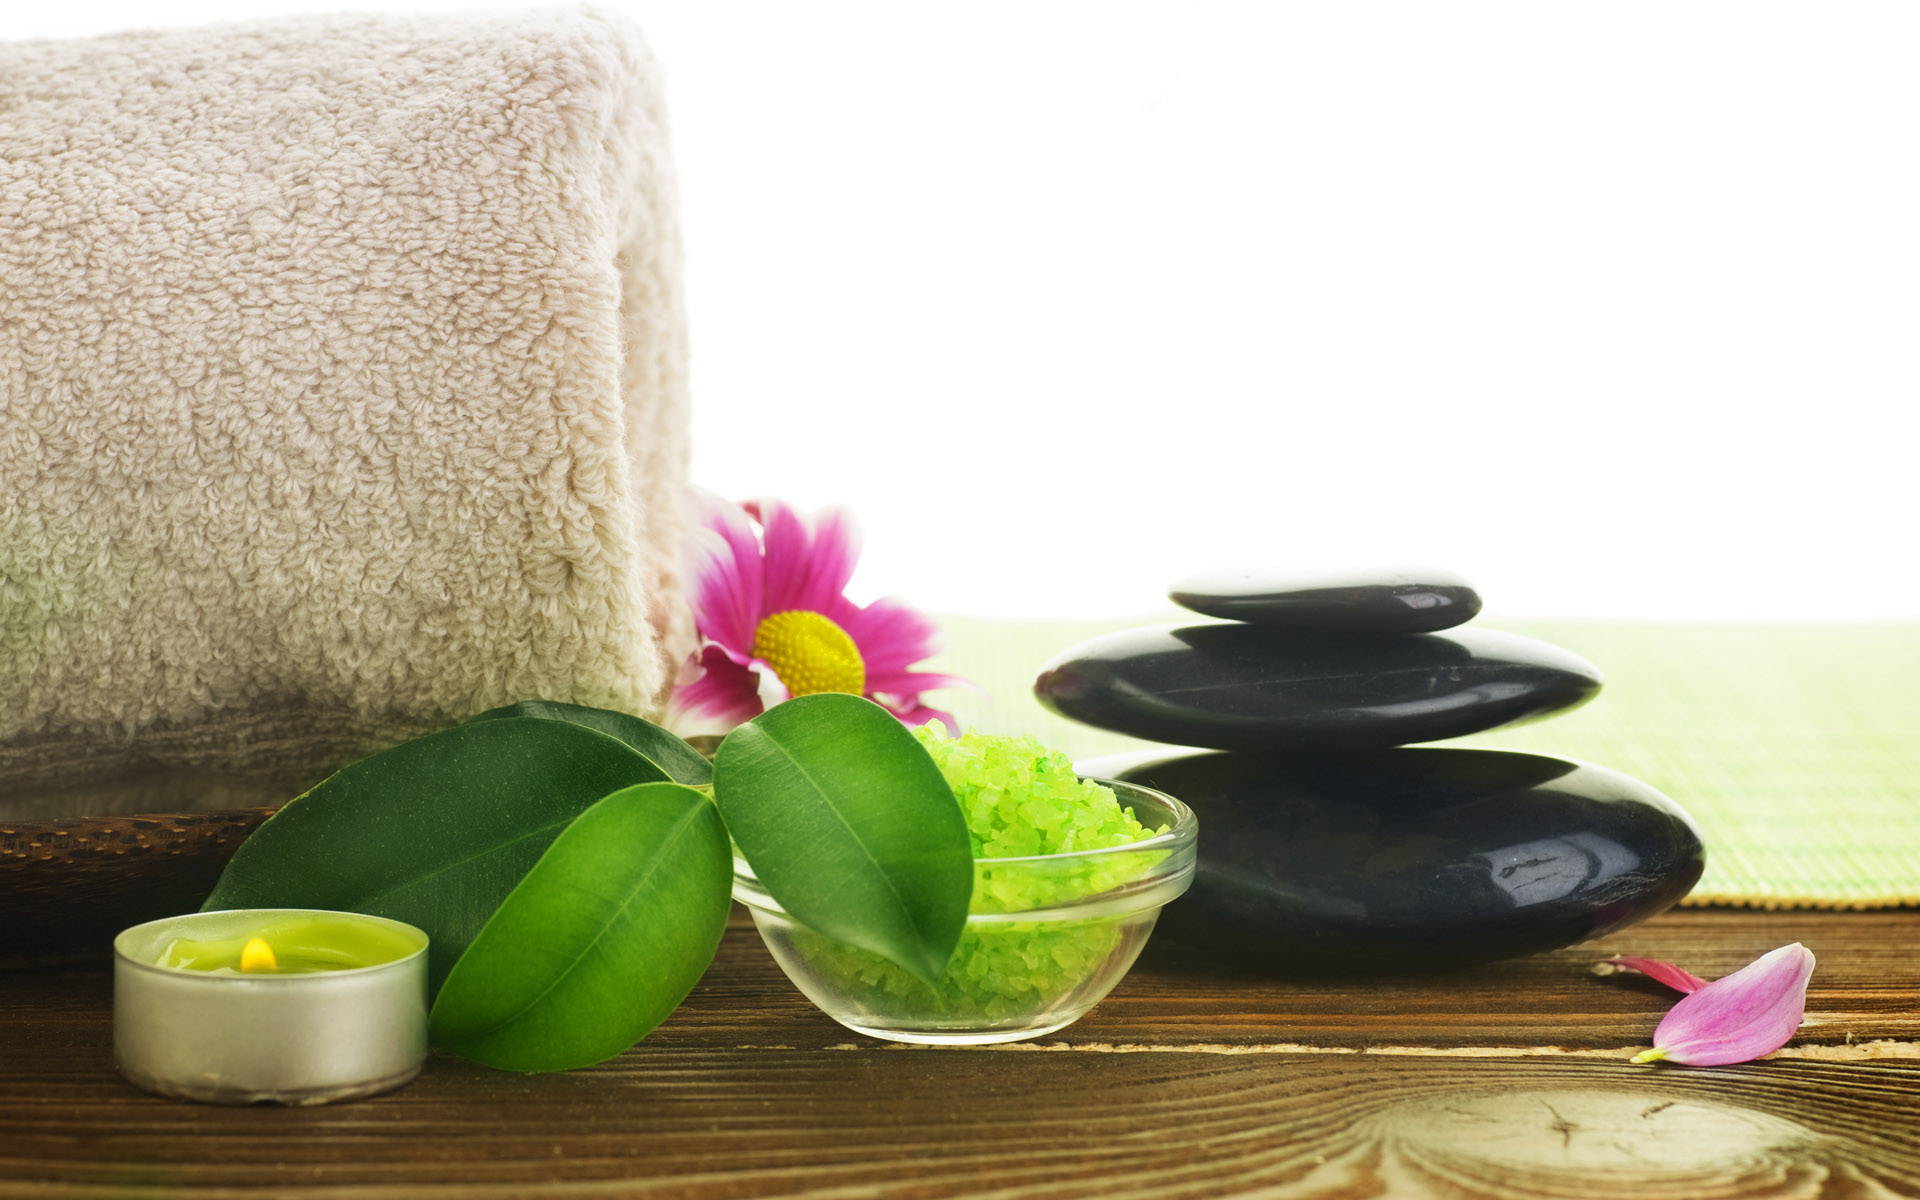 spa-treatments_1920x1200_82312